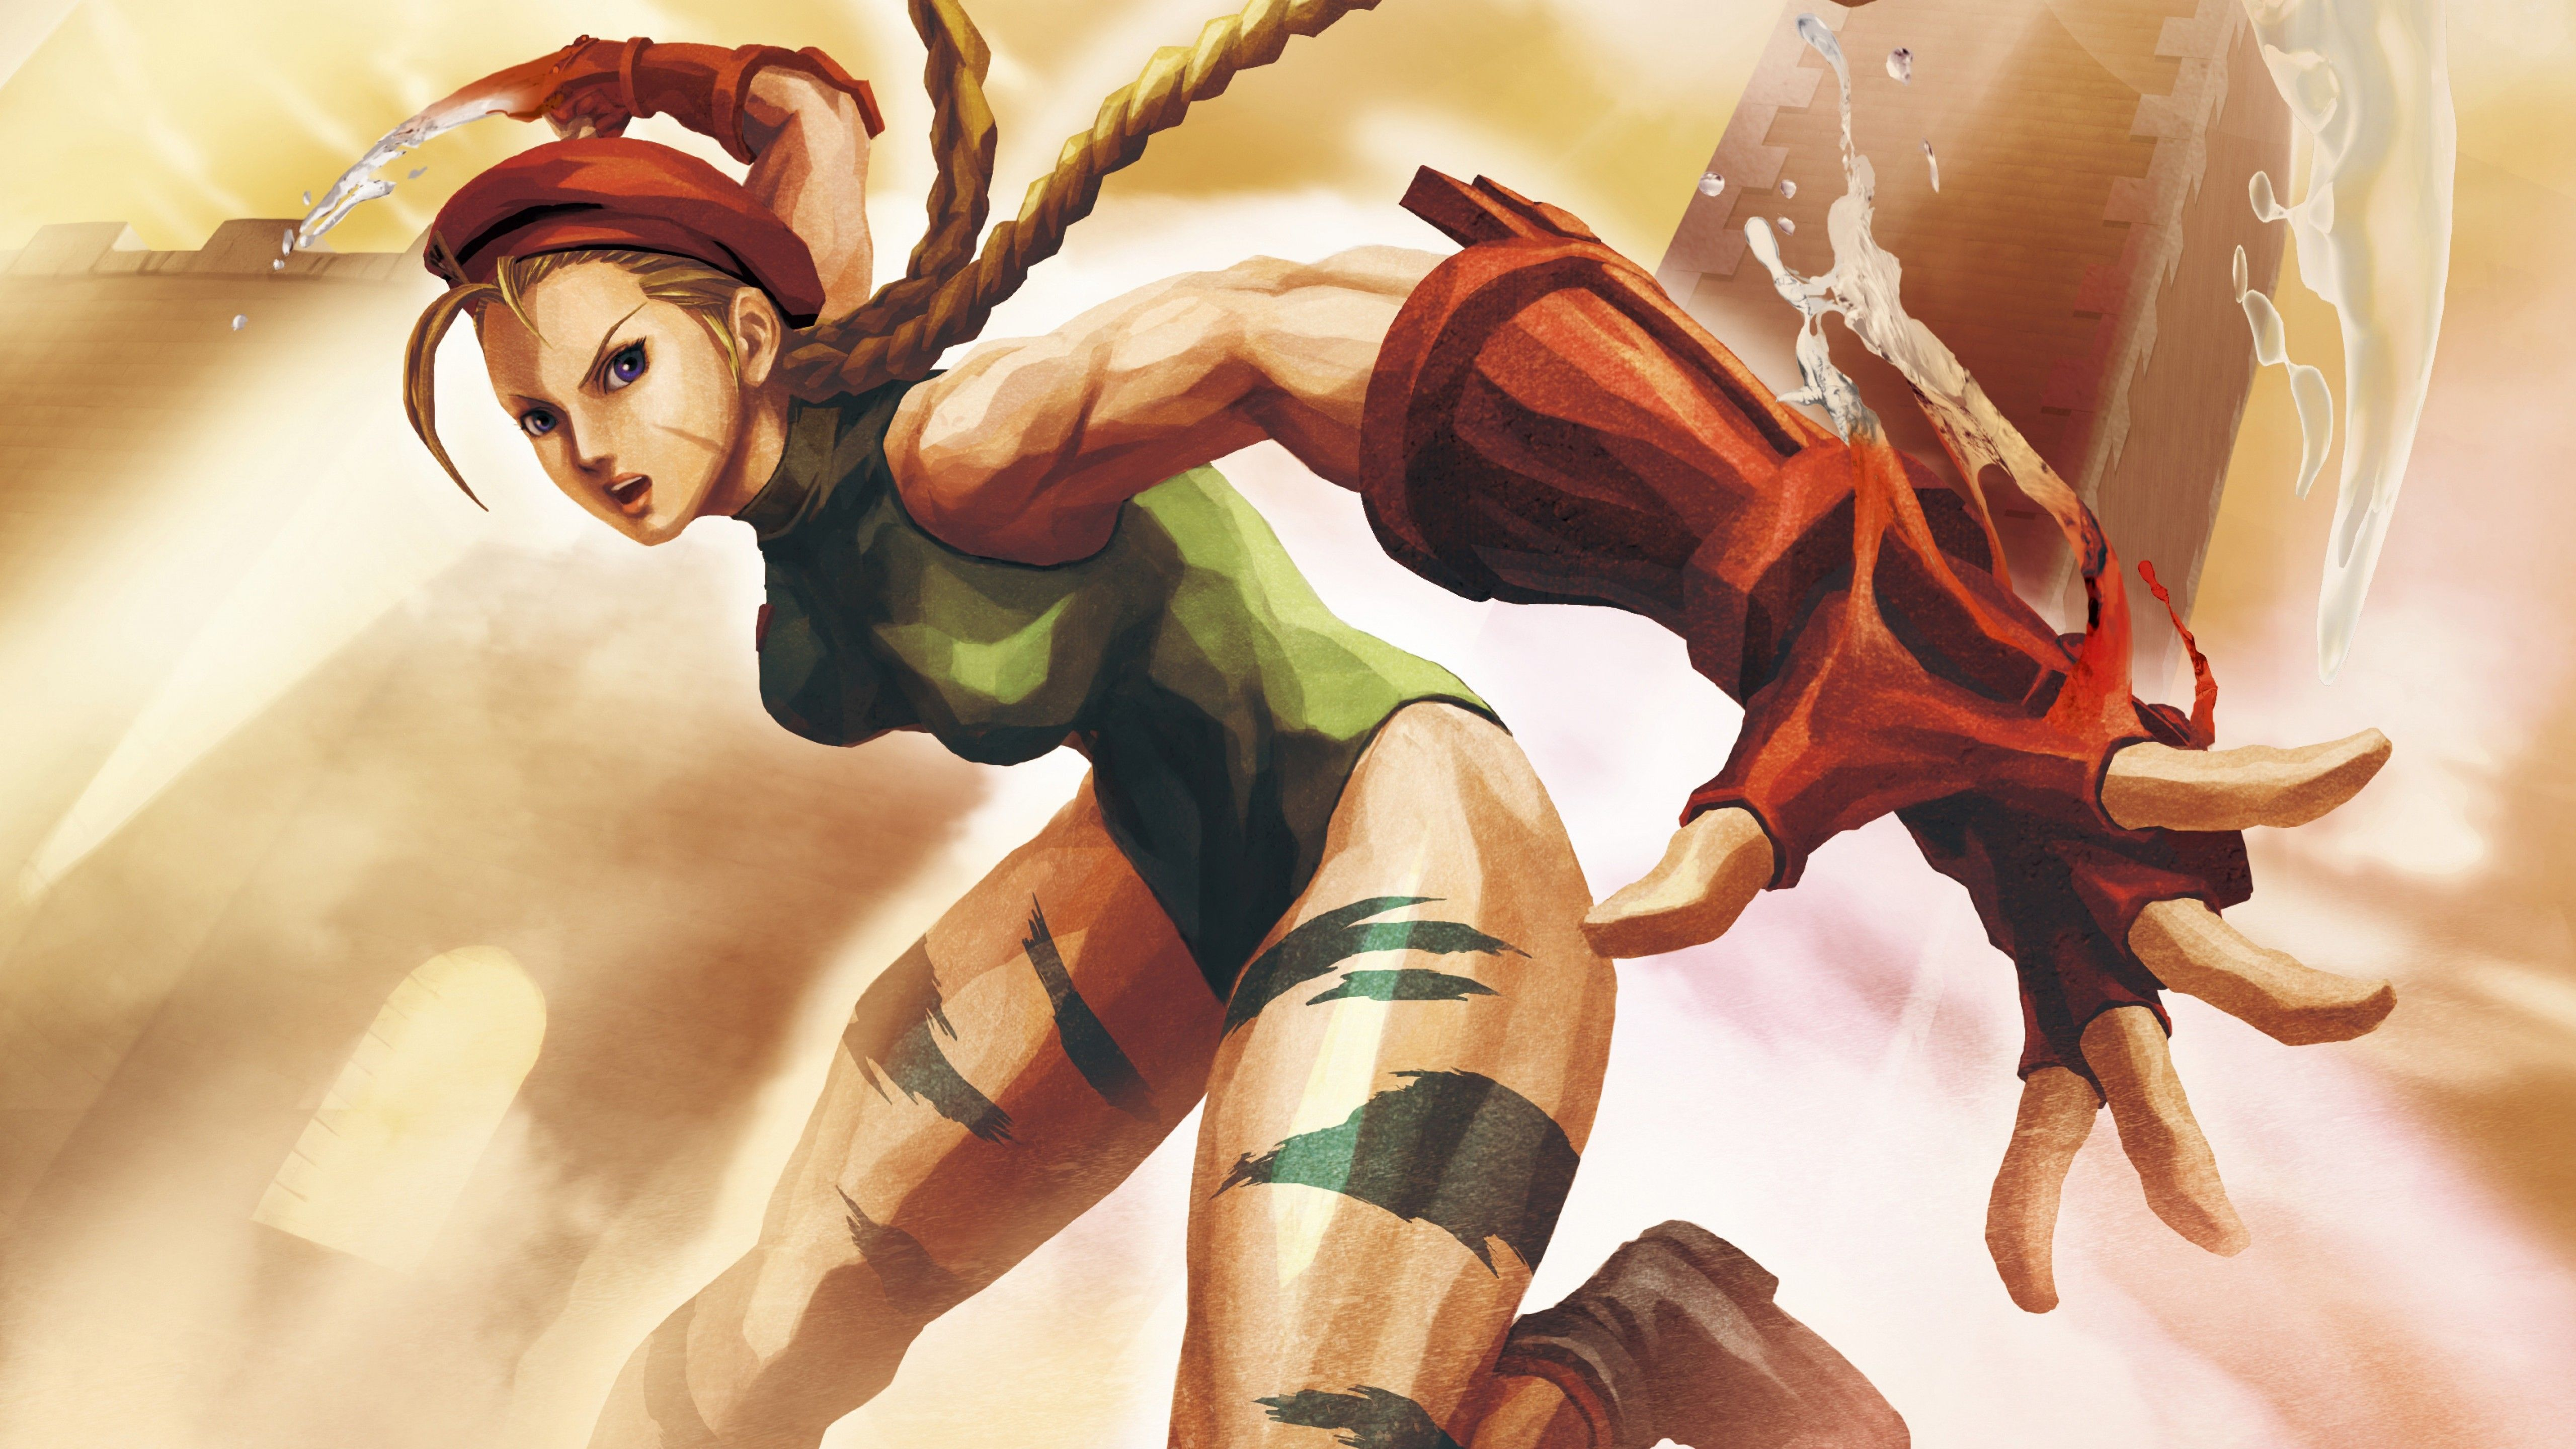 cammy street fighter v hd wallpaper x id | wallpapers | pinterest